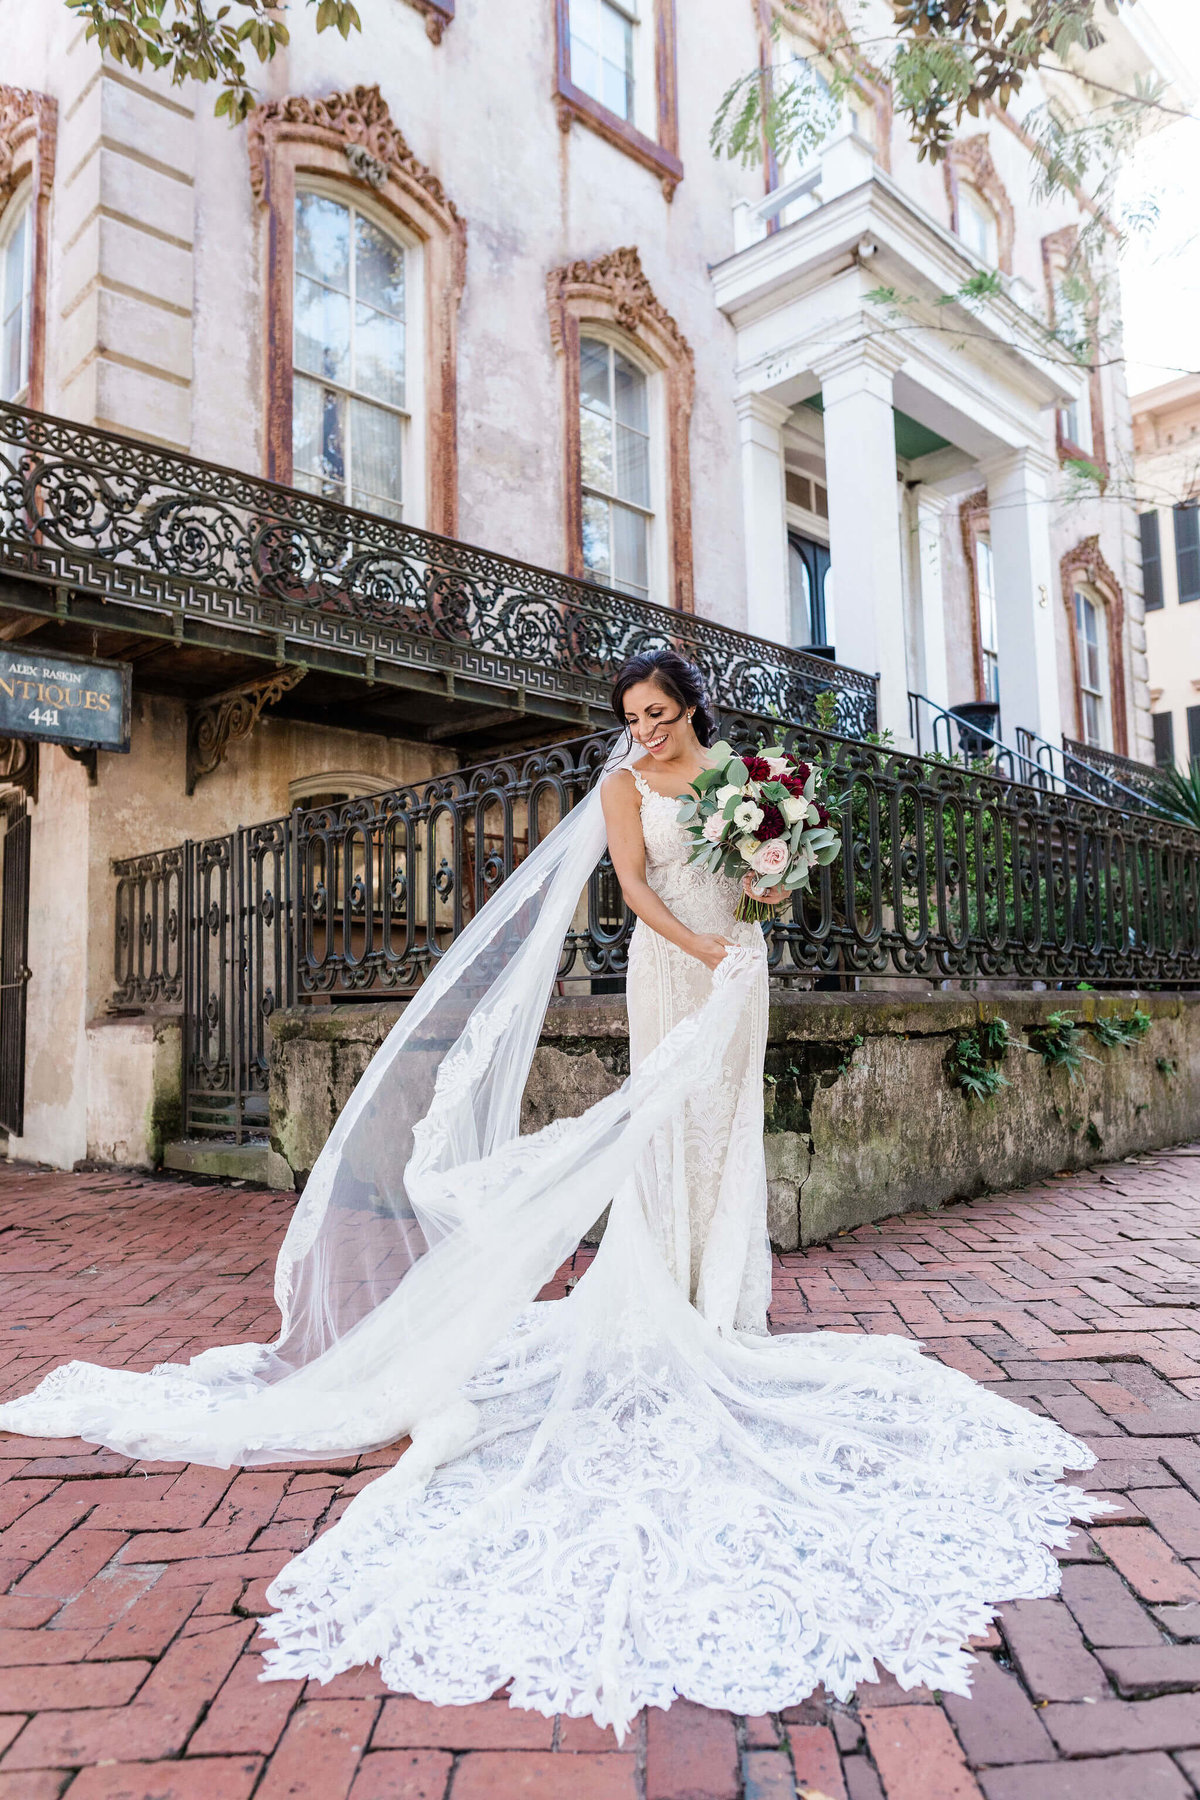 Bridal portraits in Historic Savannah by Apt. B Photography